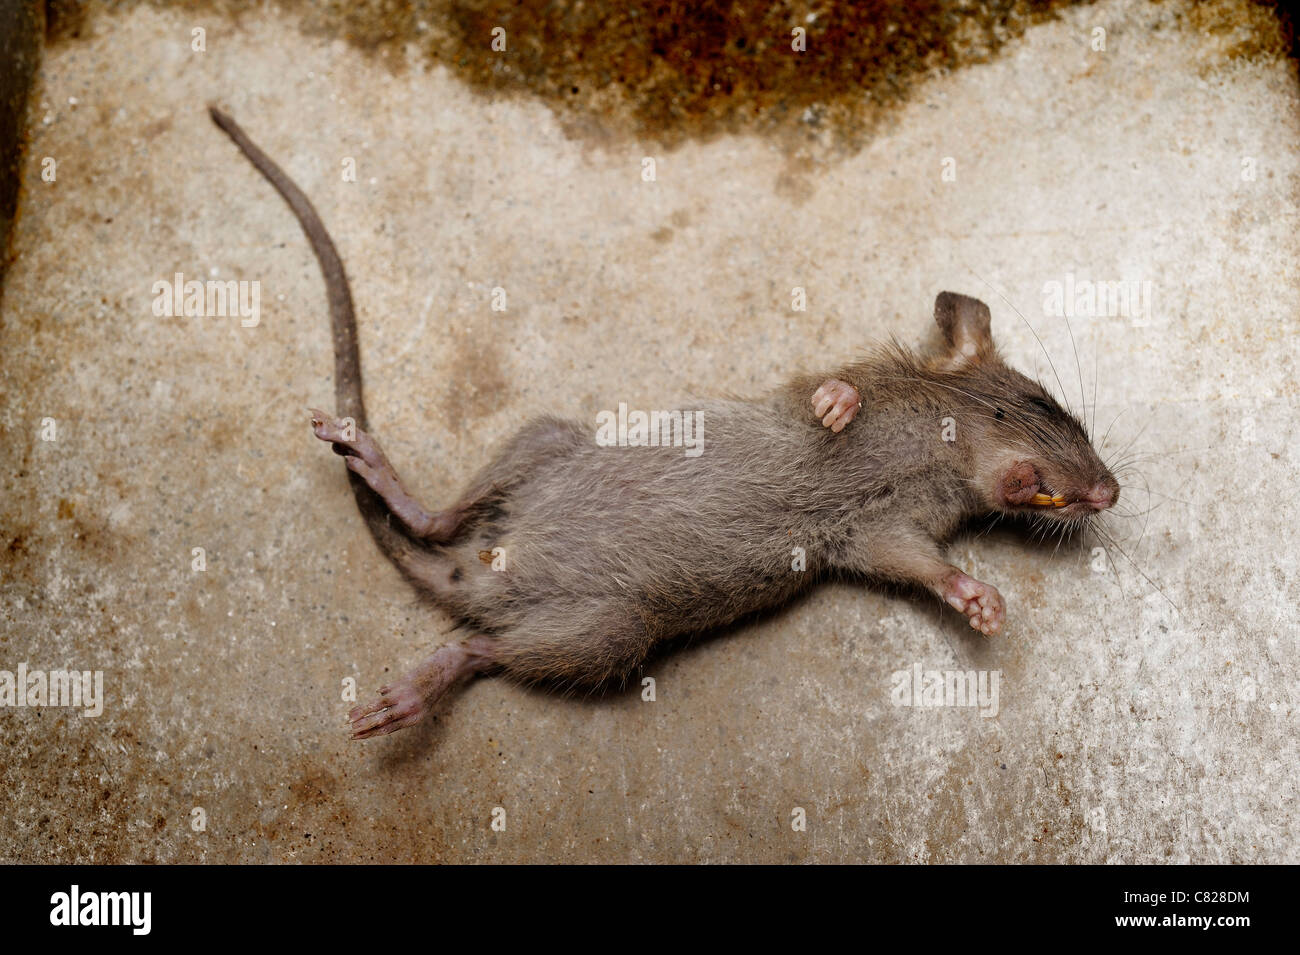 rat die on ground - Stock Image